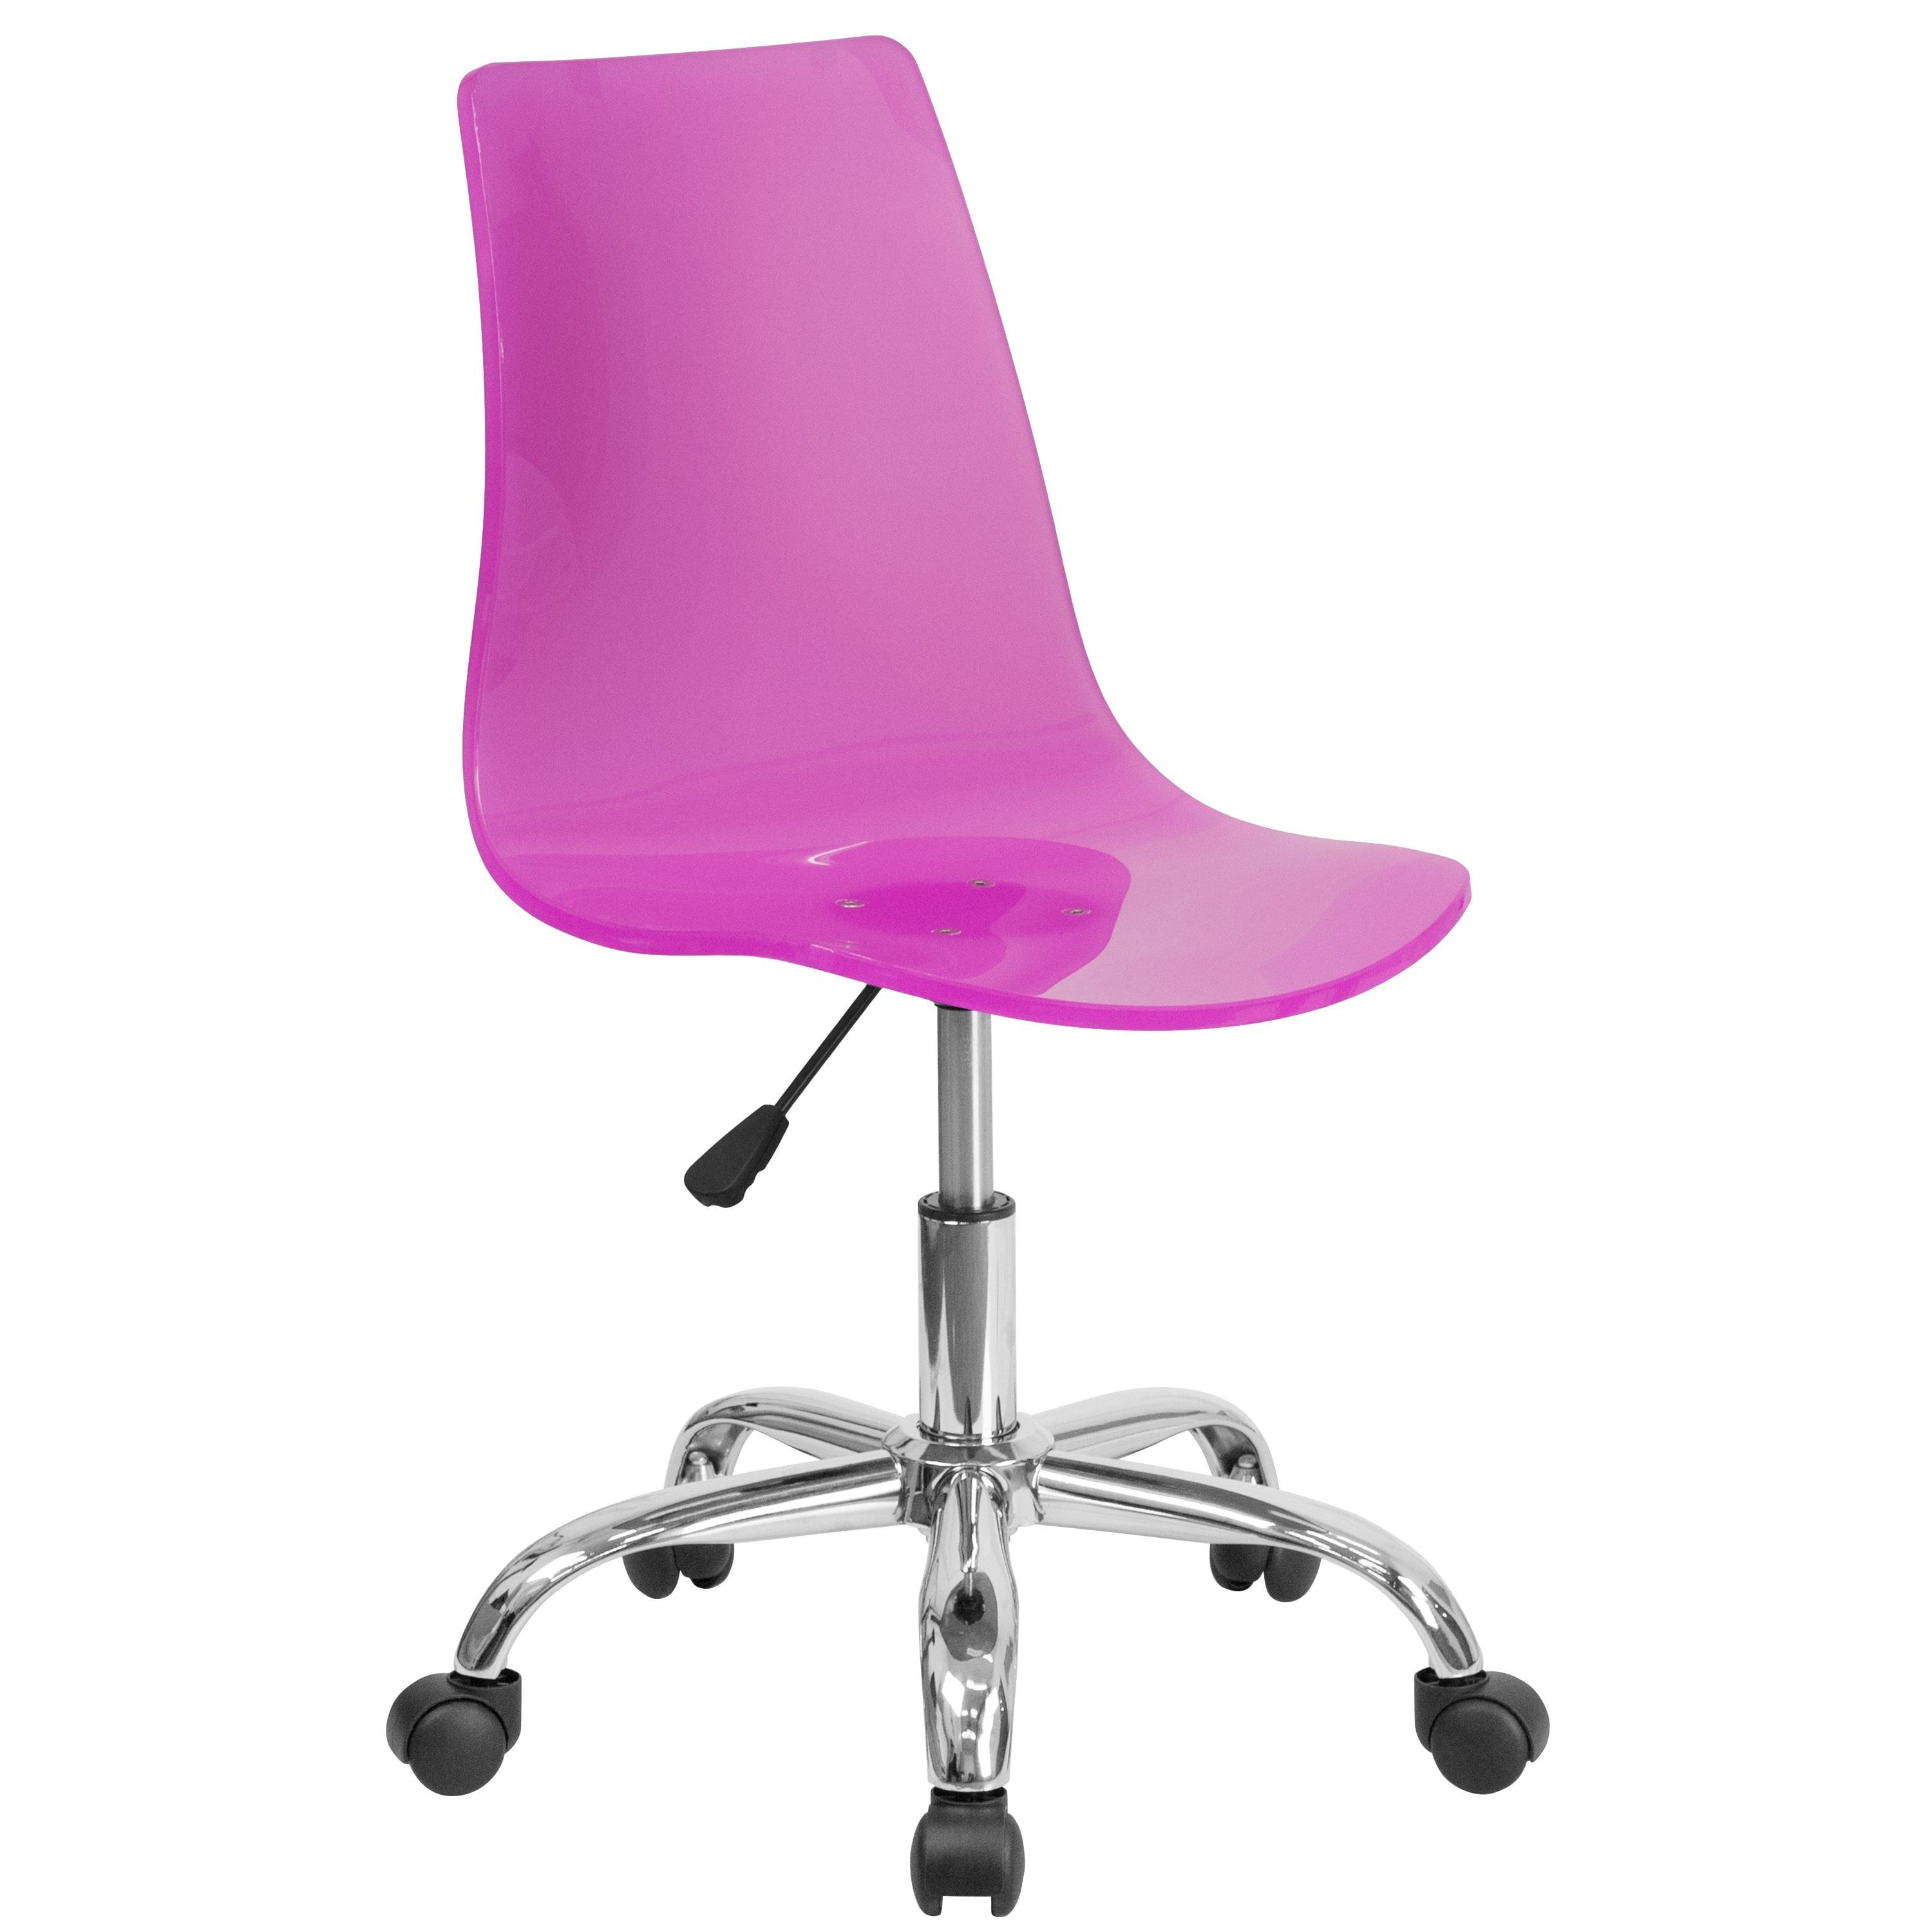 Lotos Hot Transparent Acrylic Swivel Office Chair With Base Products Pinterest Swivel Office Chair Pink Acrylics And Acrylics